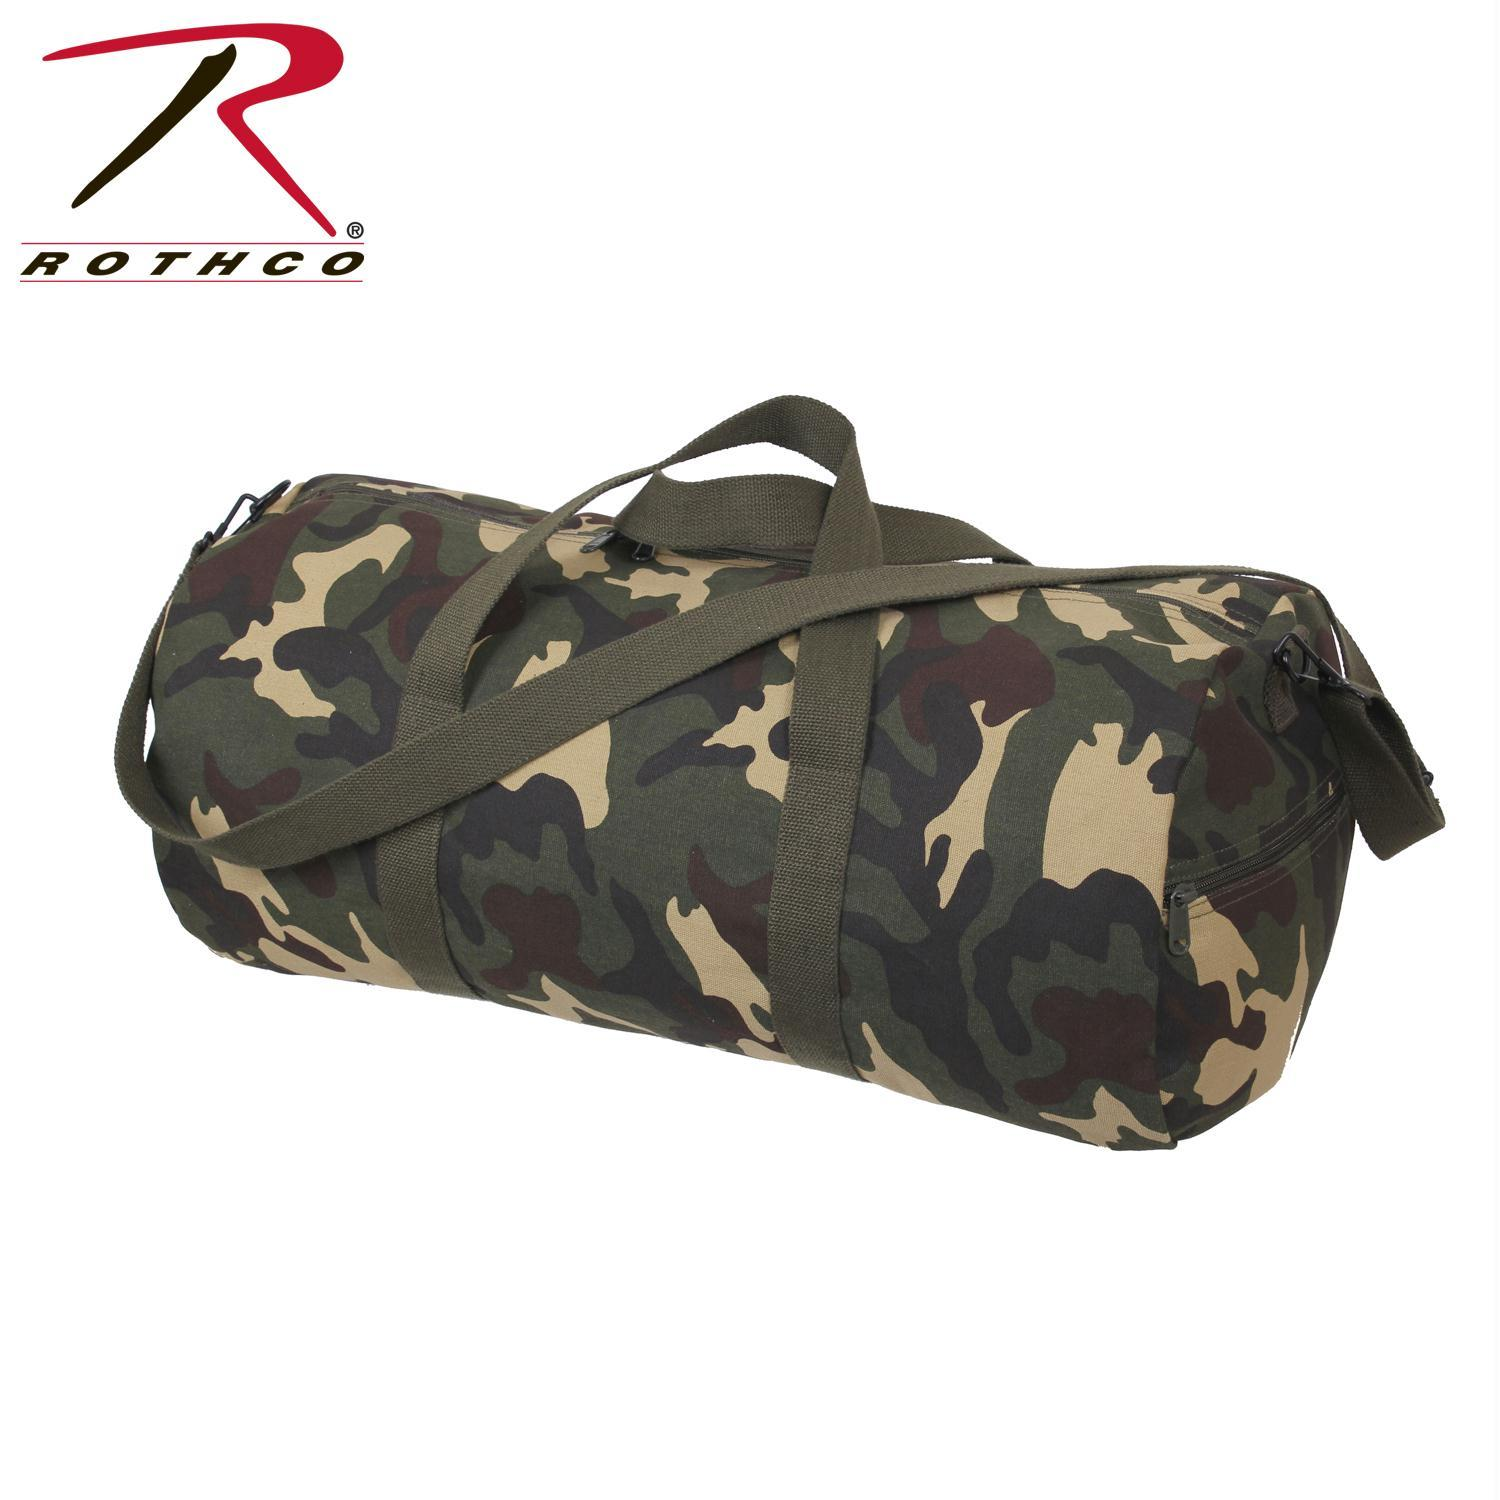 Rothco Canvas Shoulder Duffle Bag 24 Inch, Woodland Camo by Rothco